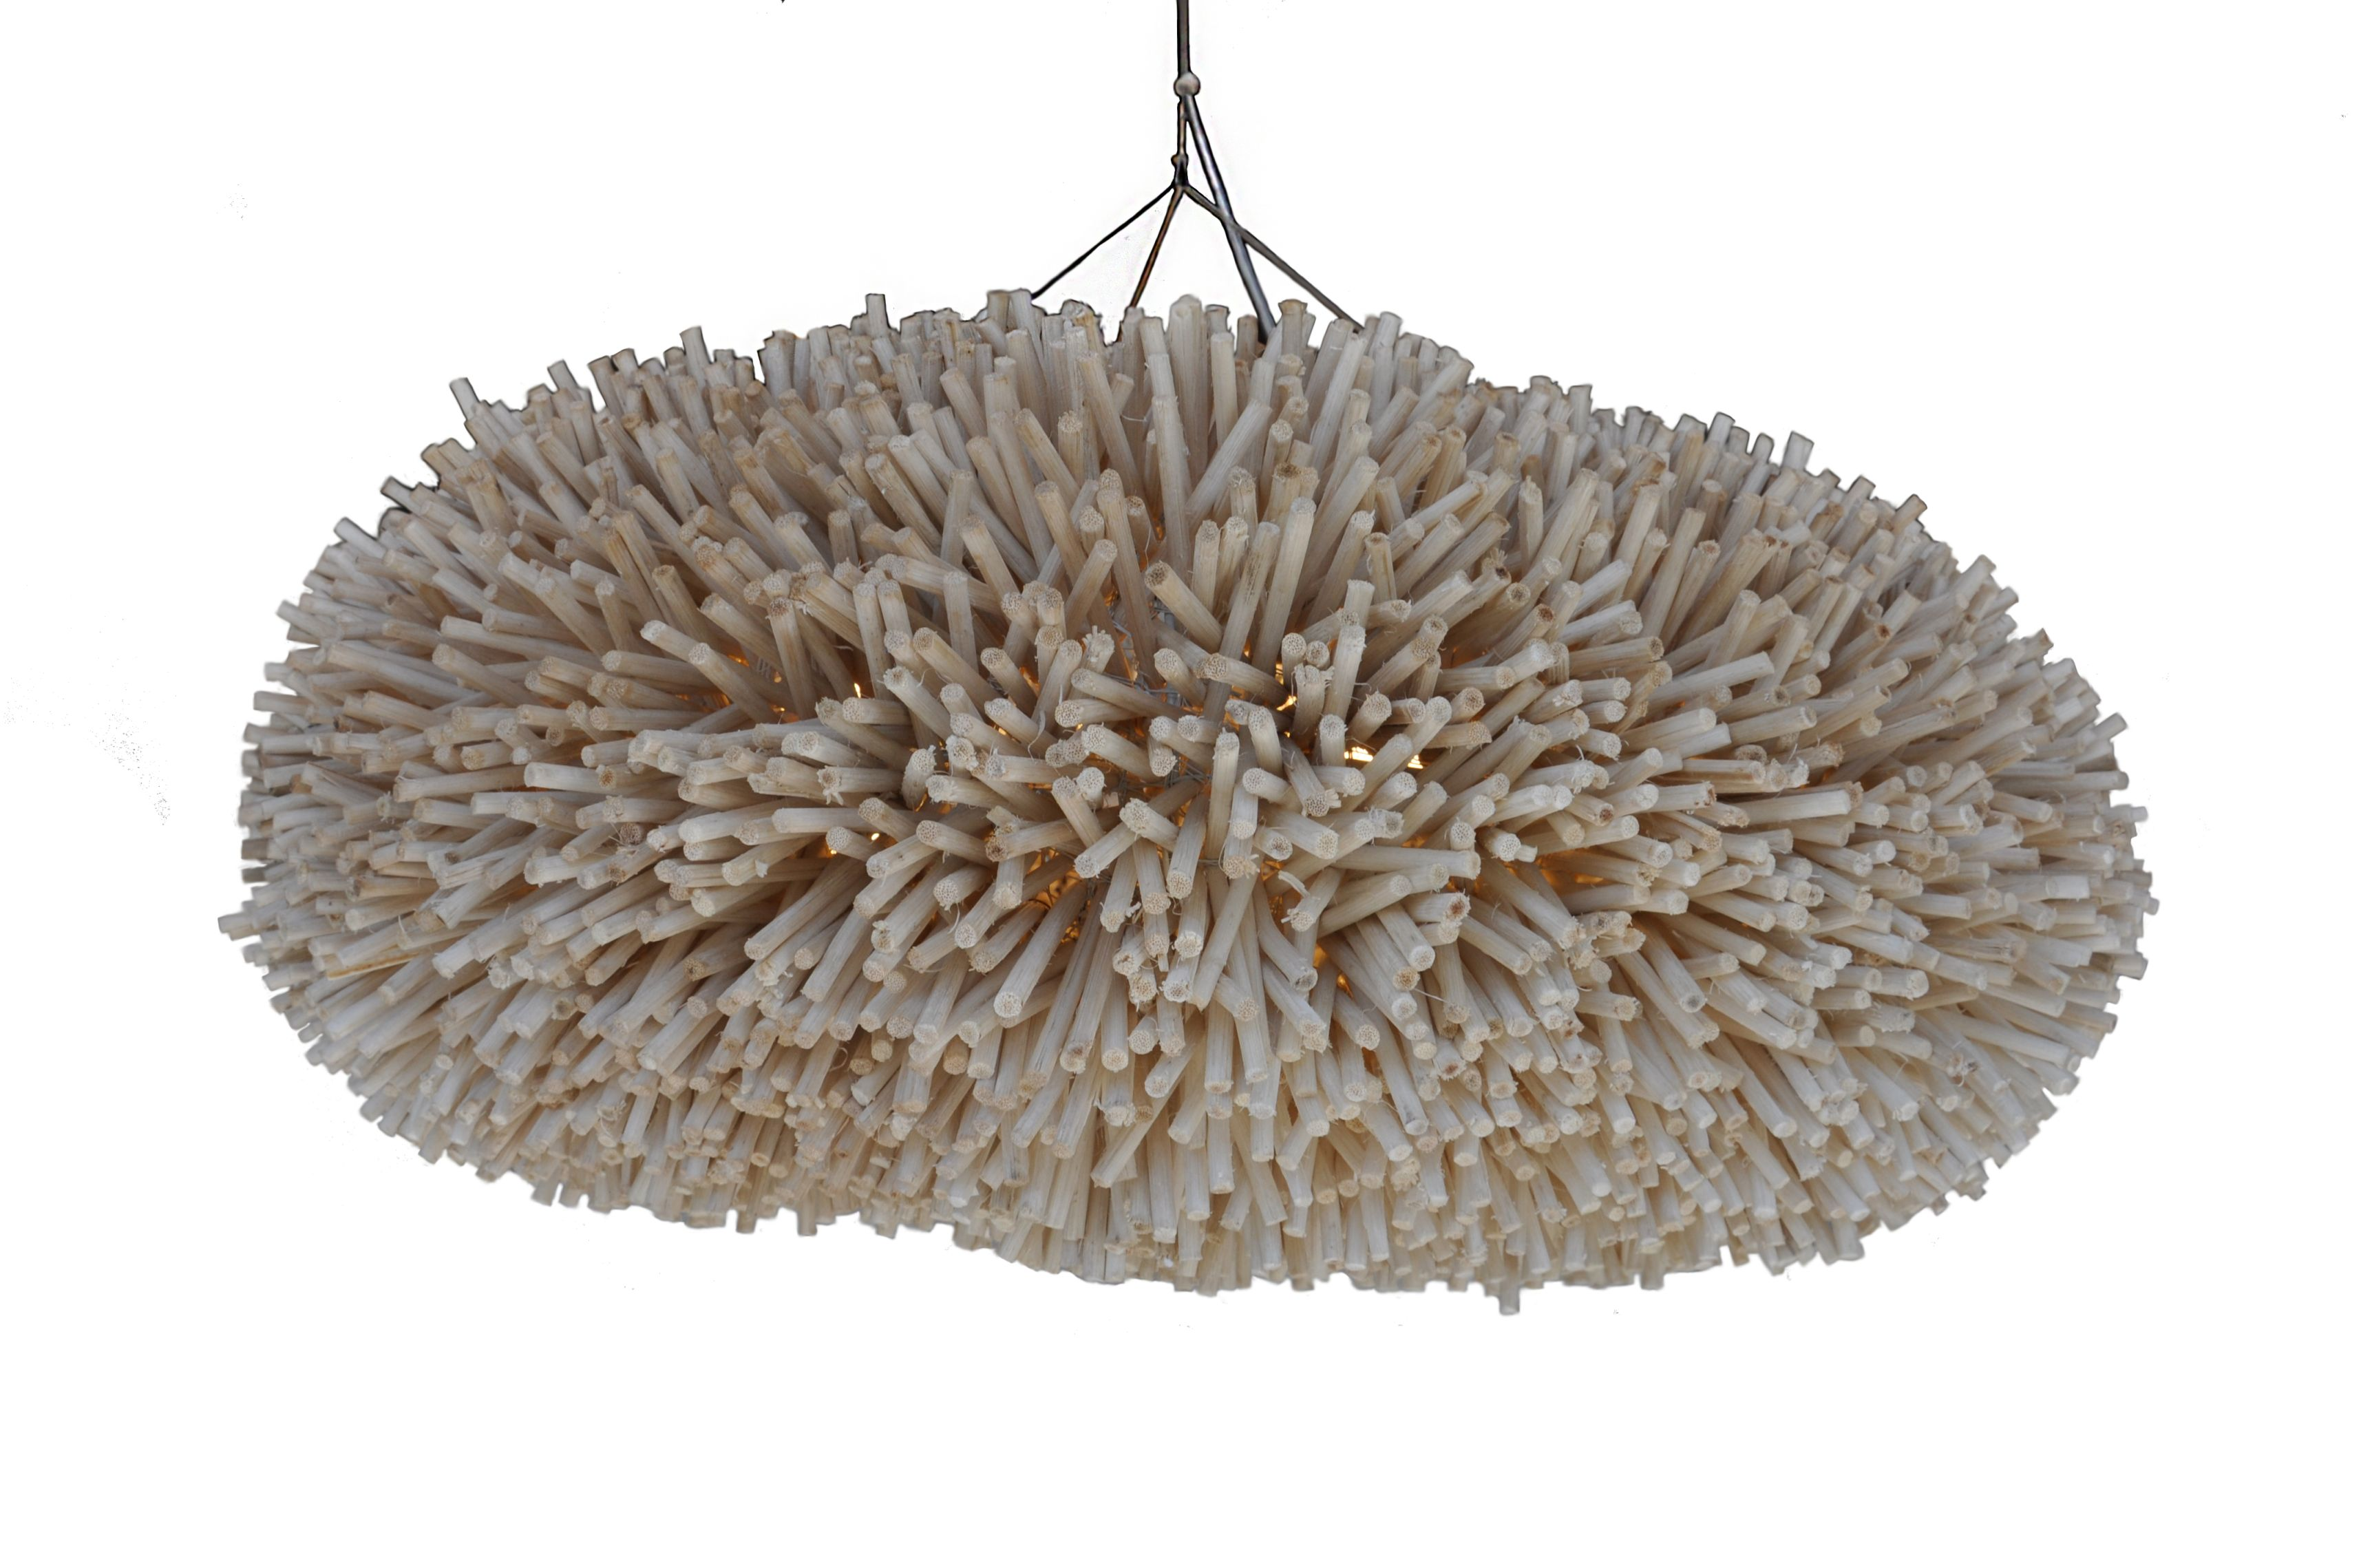 giant cornwall danielle pdf urchin media as living featured country and blogs home bent house the danielles inside zinio chandelier s raffield steam flock in tom modern rustic